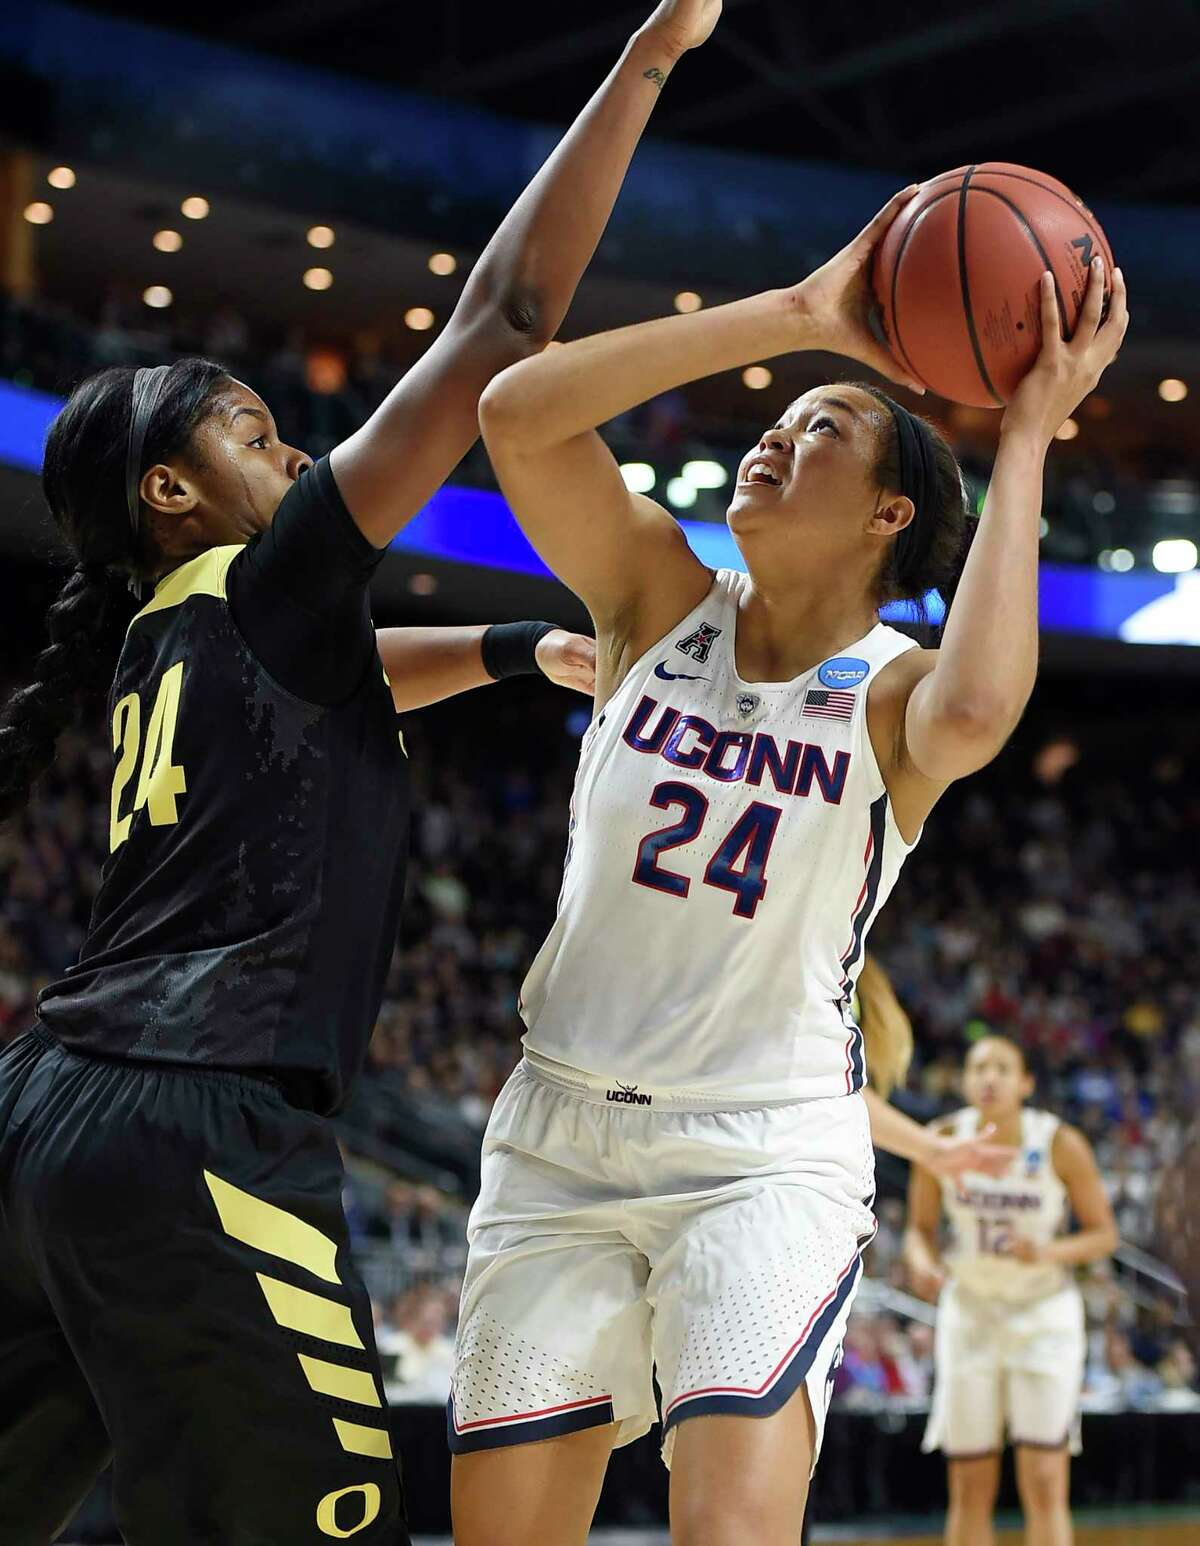 Connecticut's Napheesa Collier, right, shoots as Oregon's Ruthy Hebard, left, defends, during the first half of a regional final game in the NCAA women's college basketball tournament, Monday, March 27, 2017, in Bridgeport, Conn. (AP Photo/Jessica Hill) ORG XMIT: CTJH103